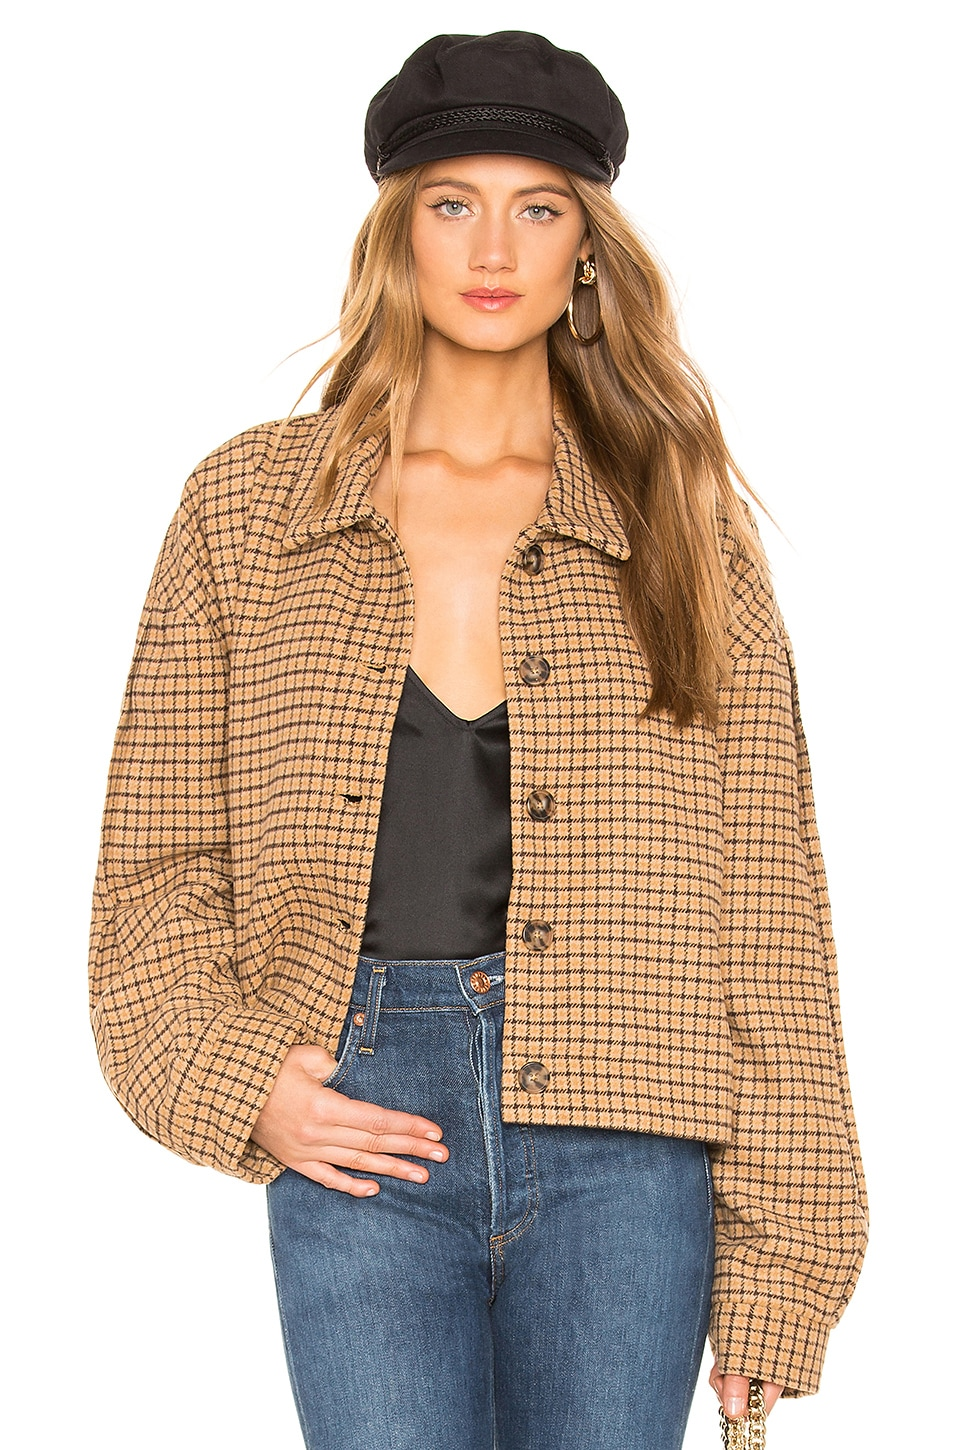 L'ACADEMIE The Gavin Jacket in Tan